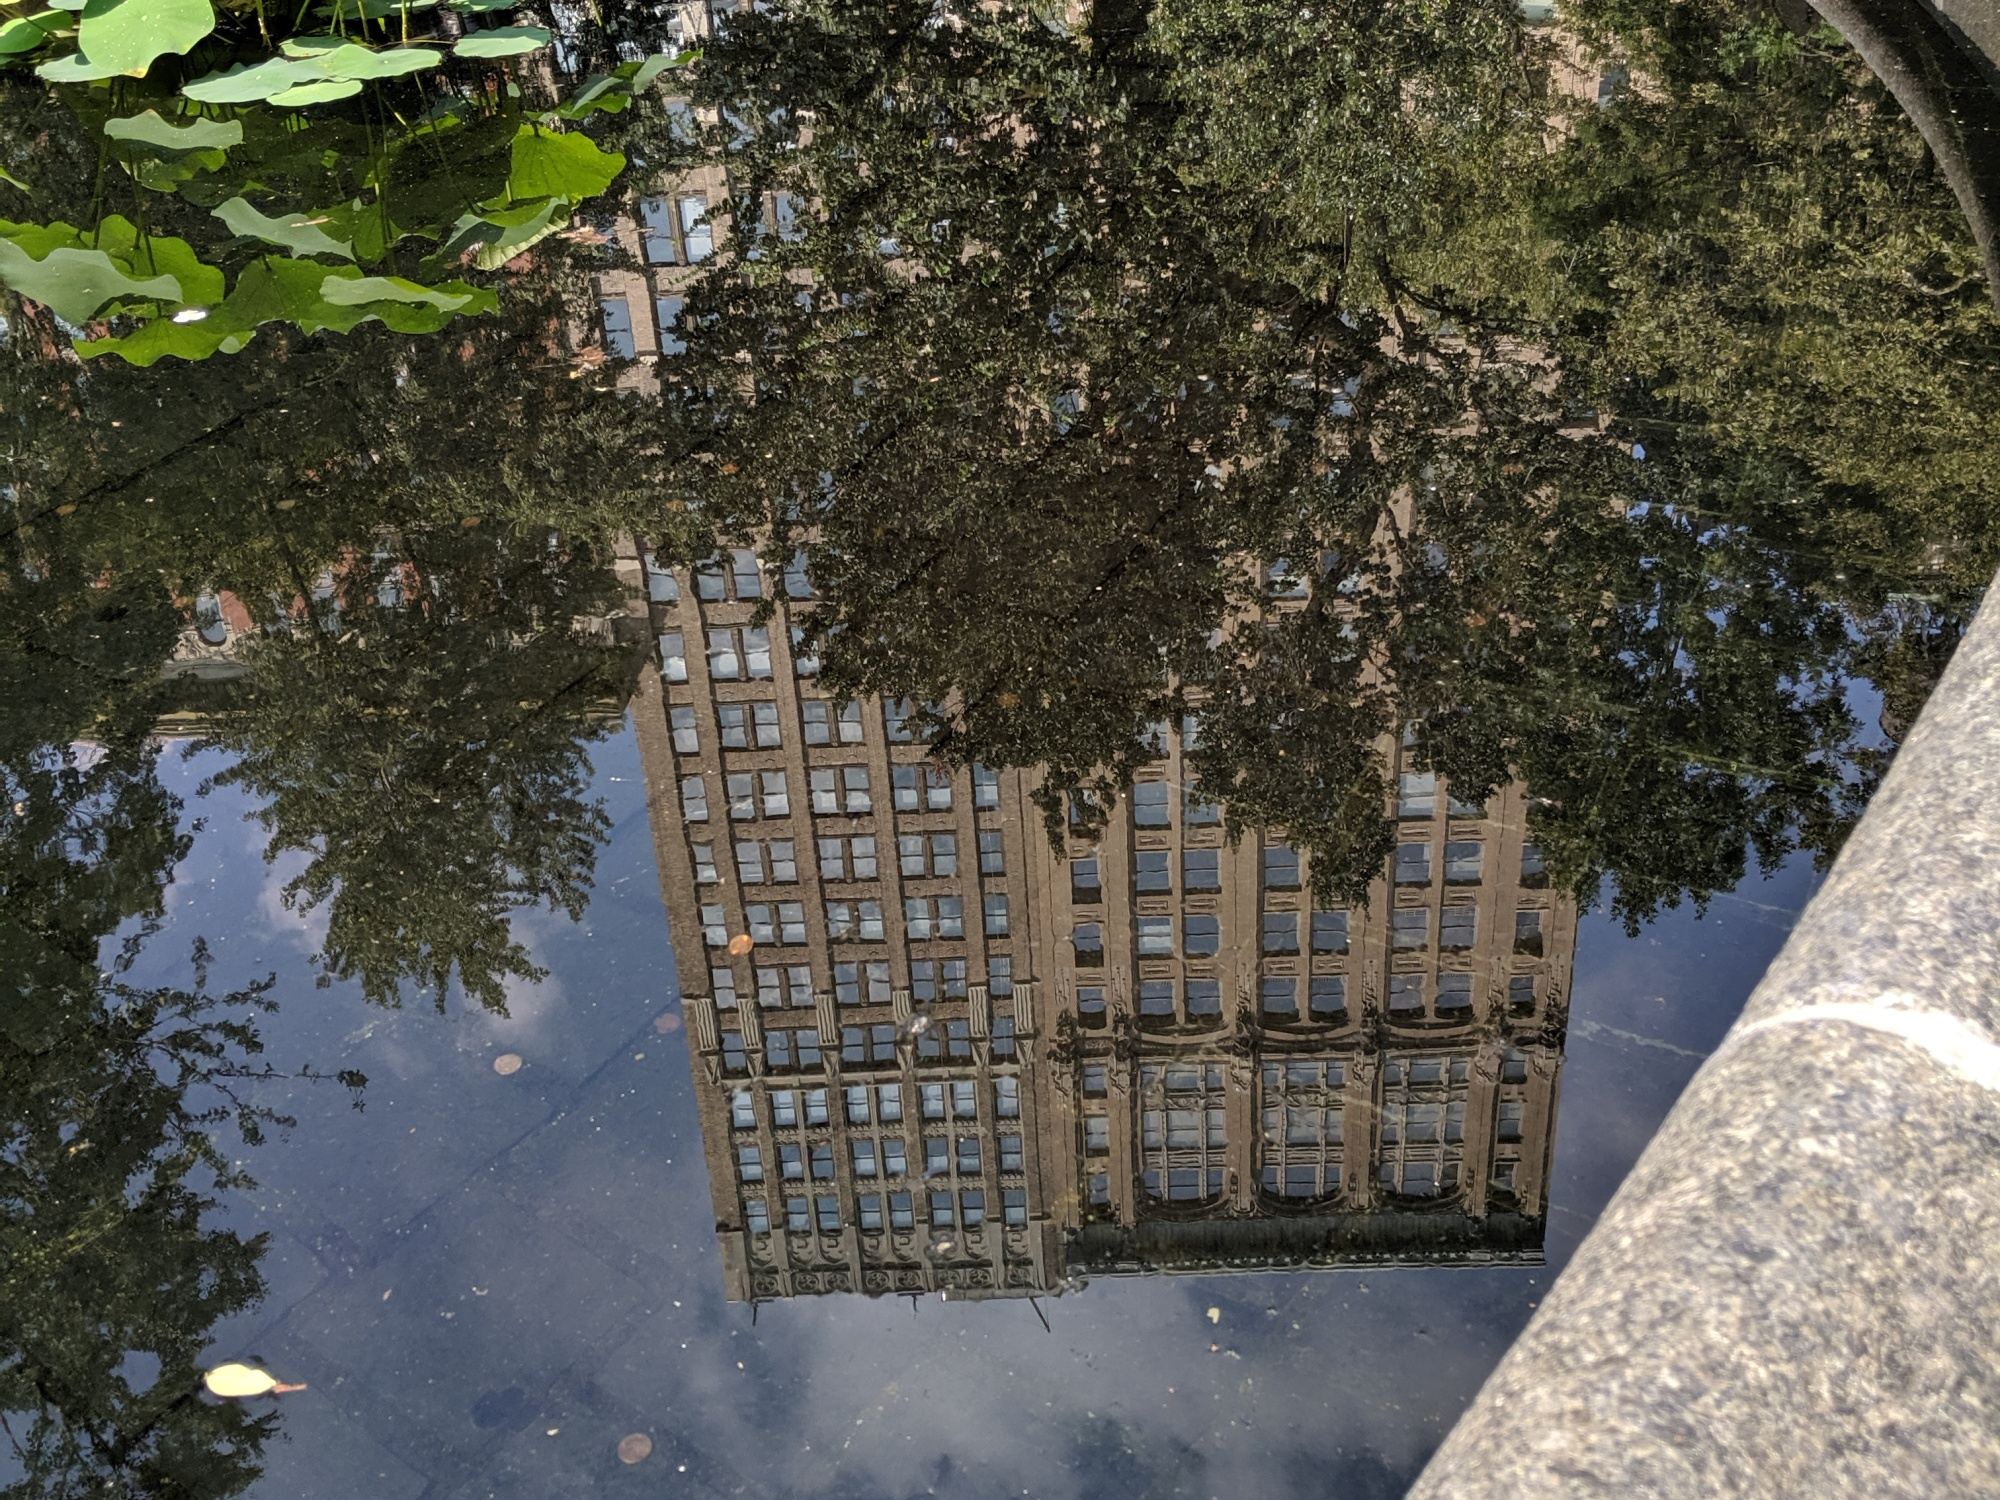 reflected image of historic buildings on 26th street in Manhattan, photo by LensMomentsNS